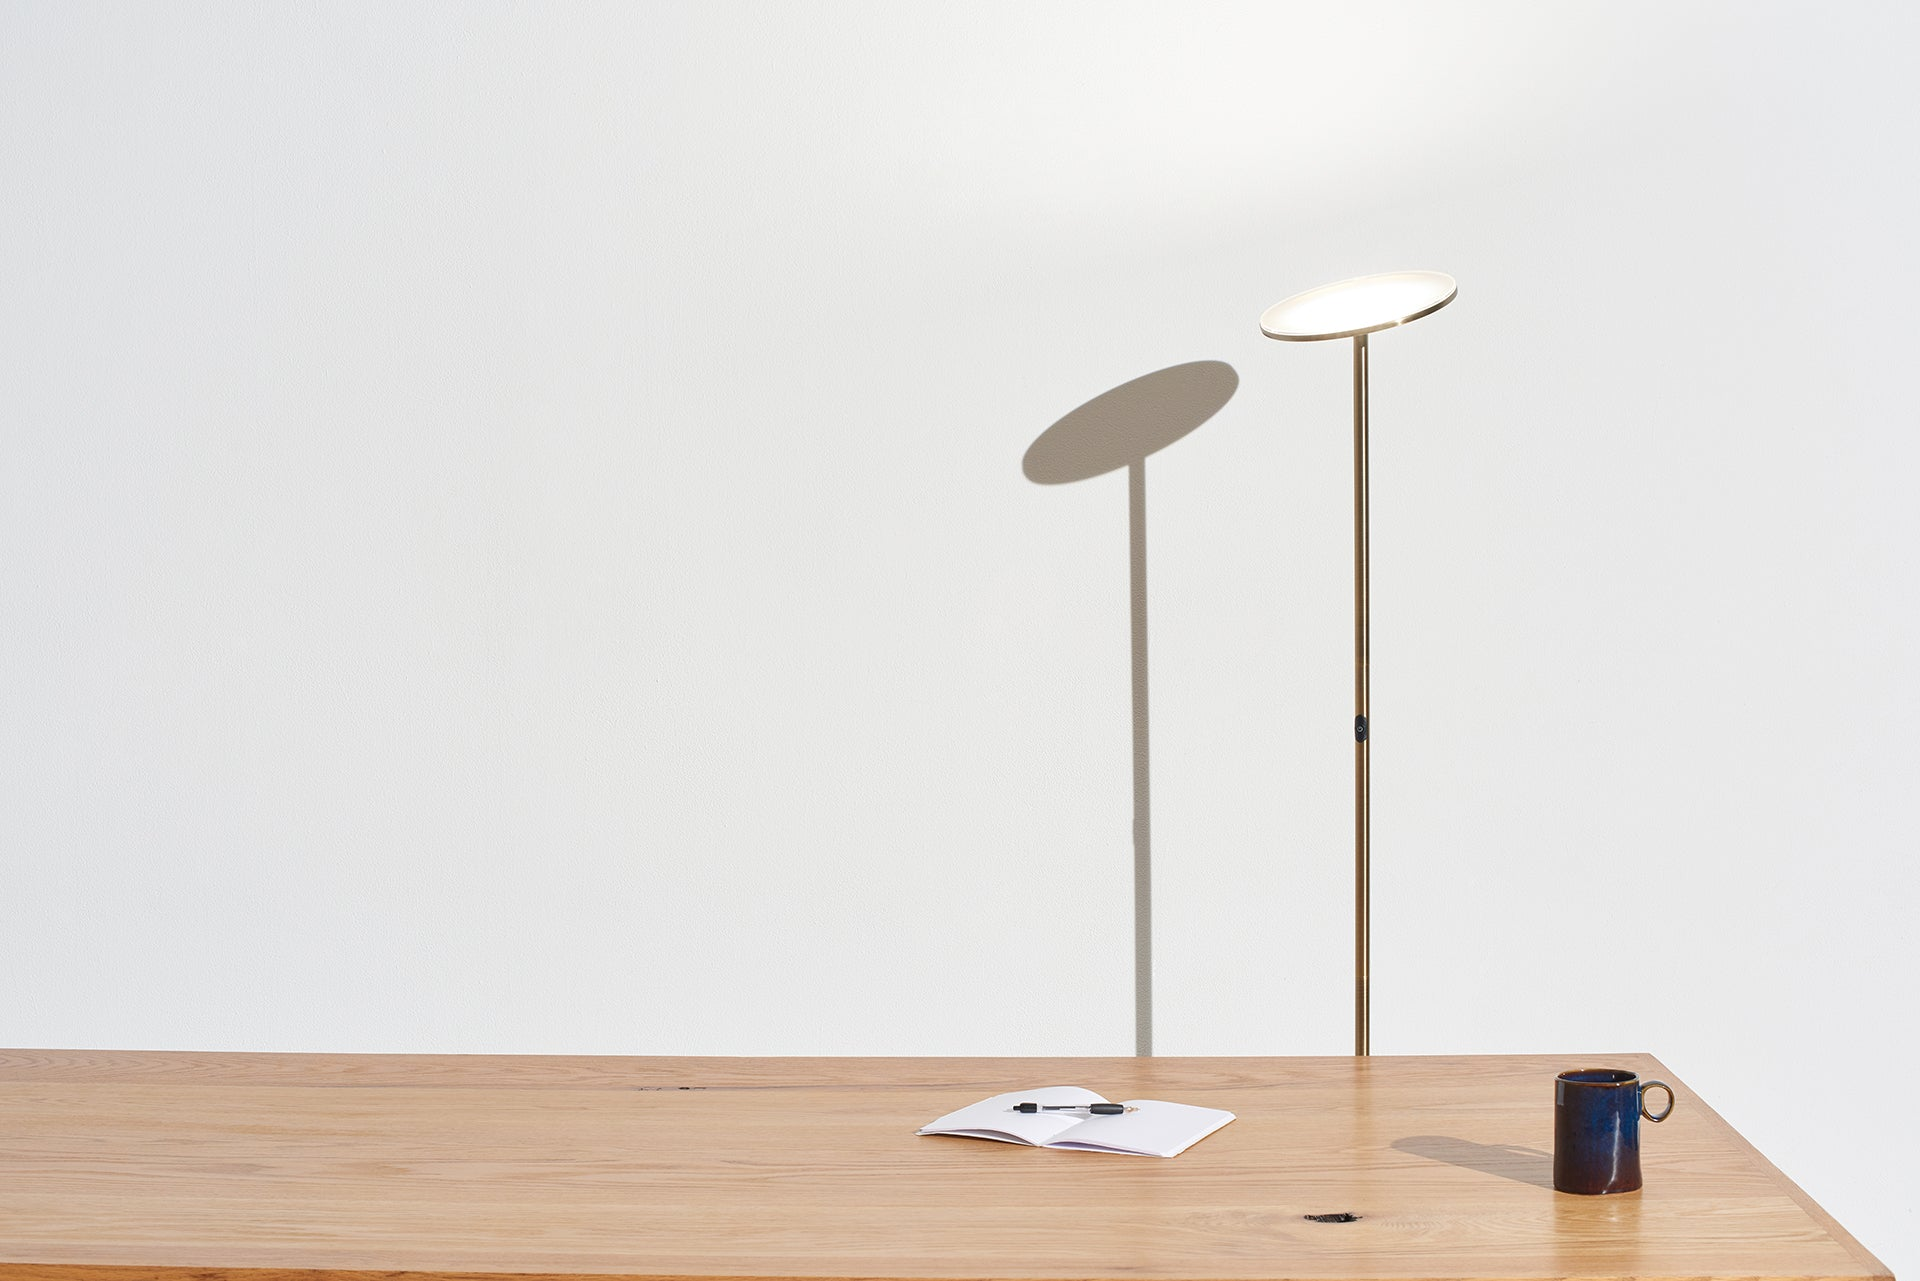 for Your Living Room /& Office Halogen Lamp Alternative with 3 Light Options Incl Bronze The Very Brightest LED Torchiere Floor Lamp Brightech Sky Flux Daylight Dimmable Modern Uplight